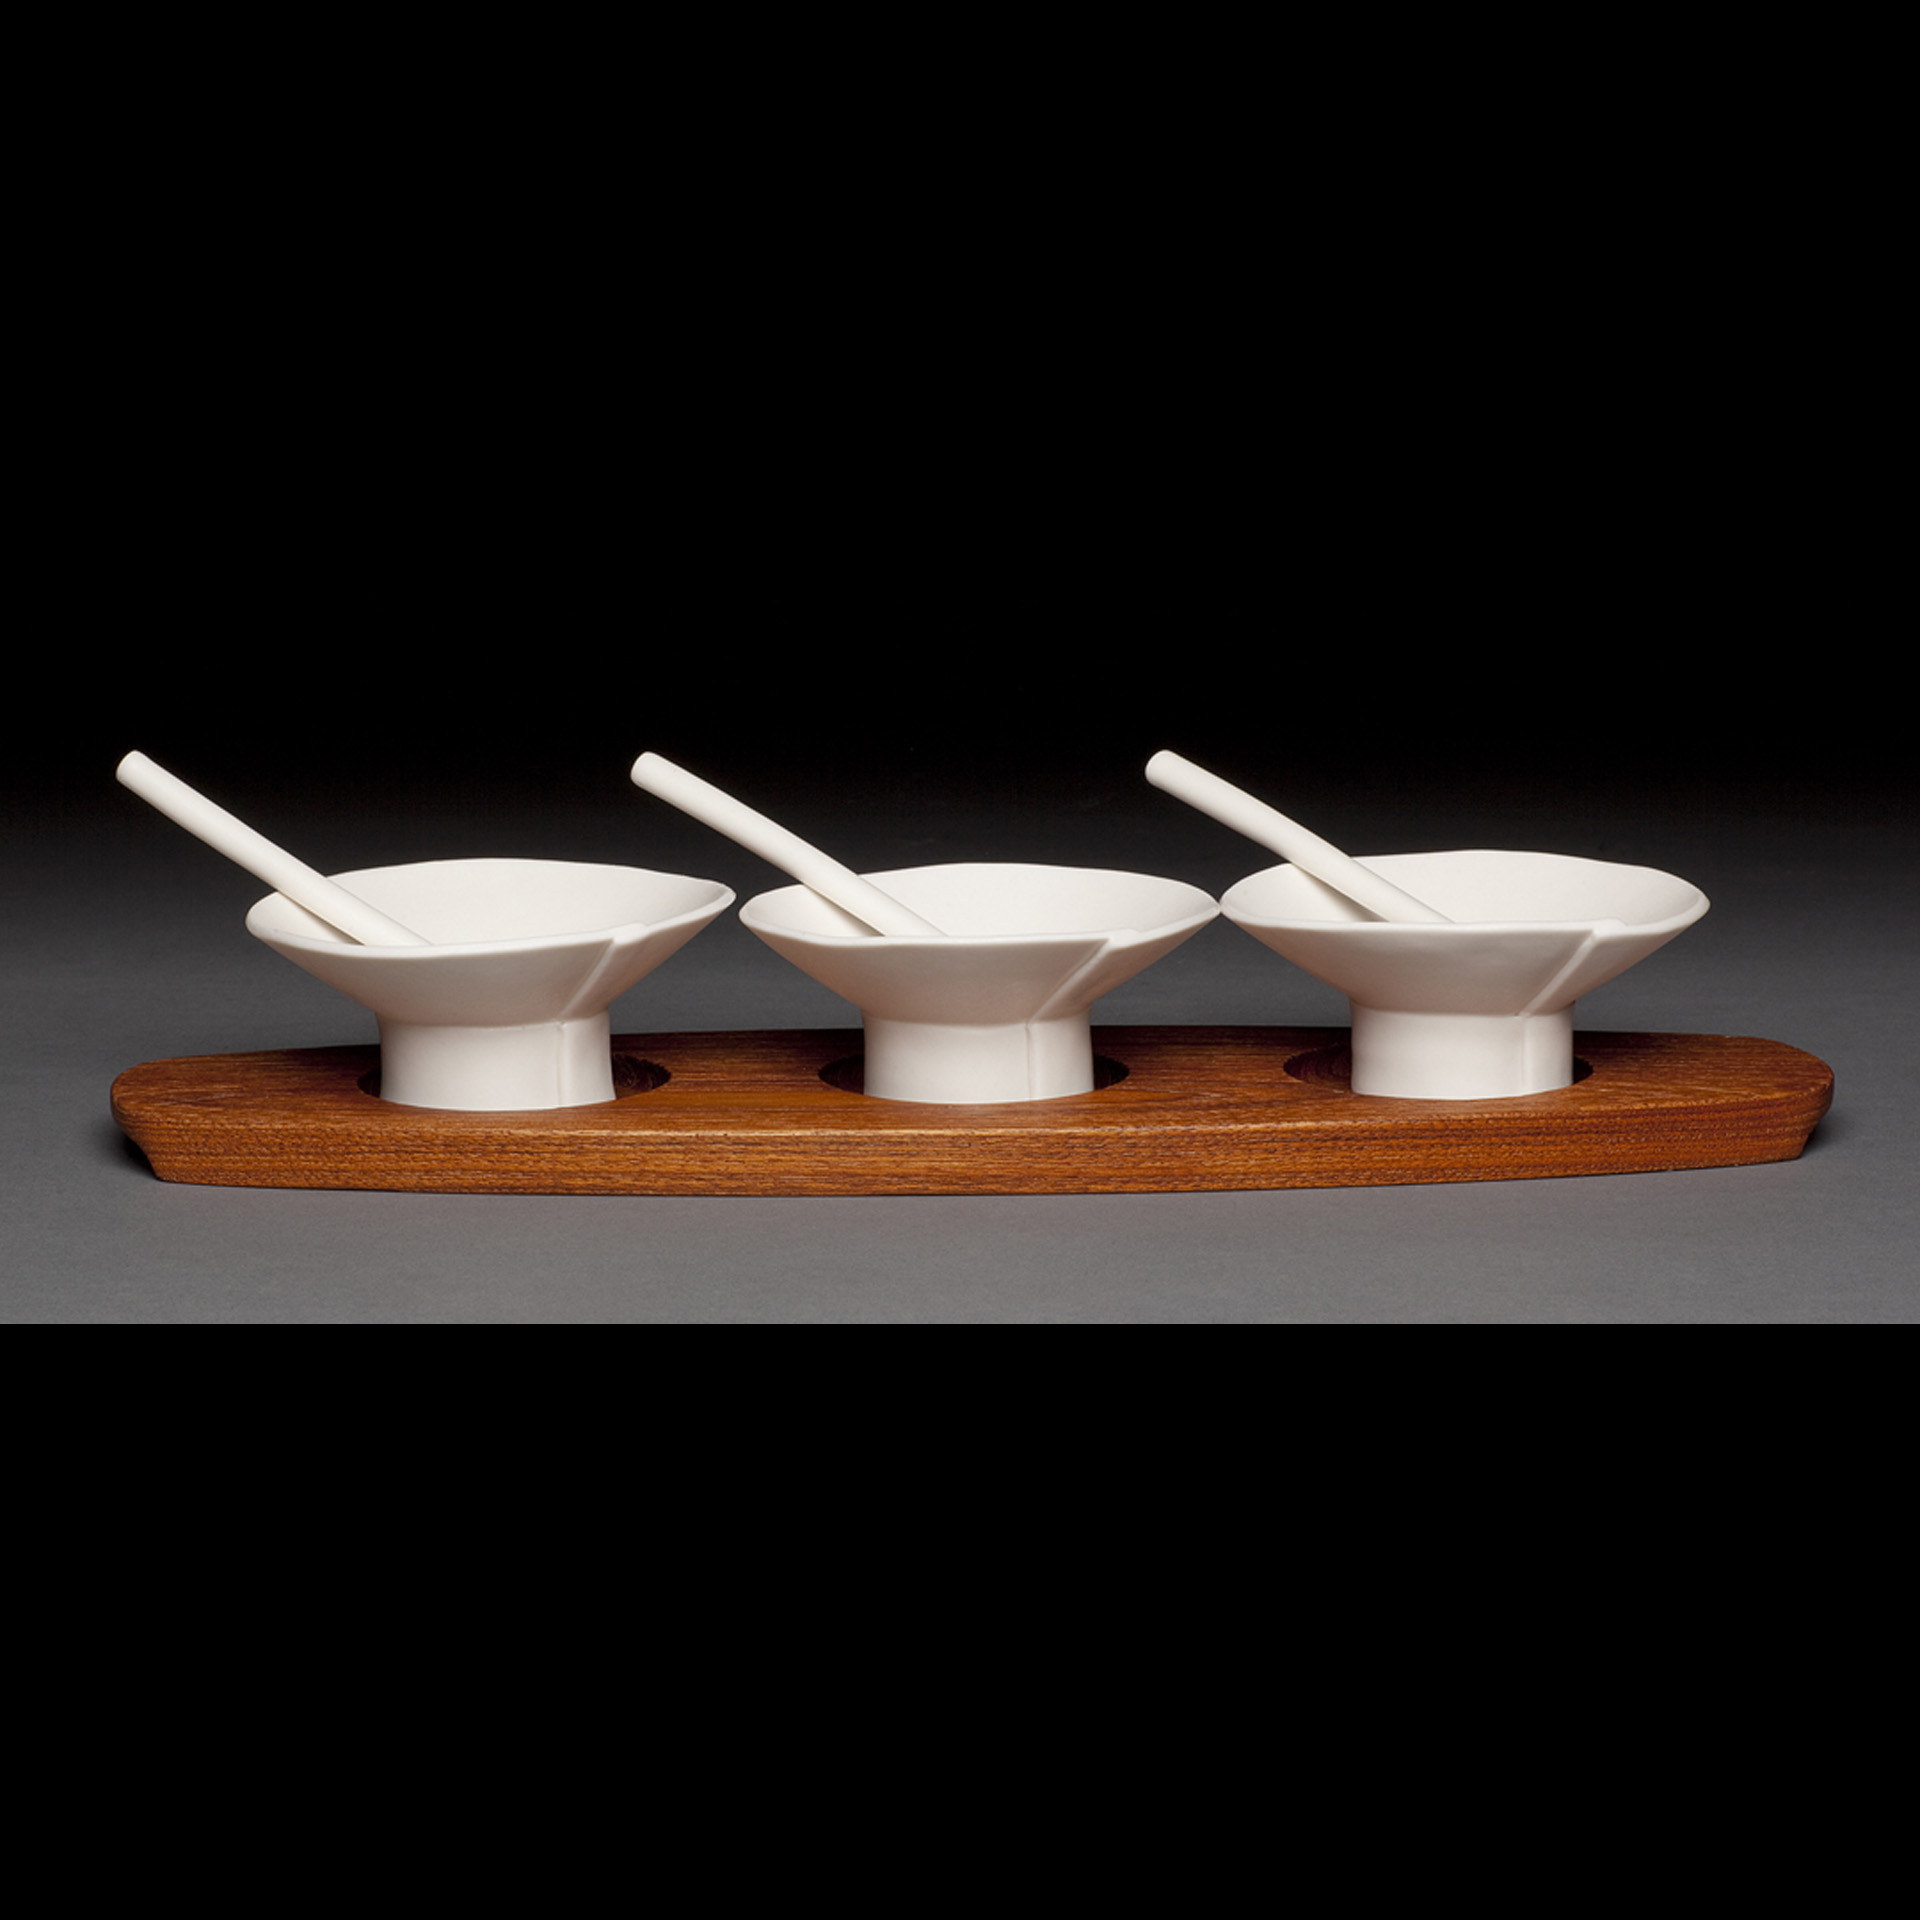 Condiment Set with Vintage Wood Tray